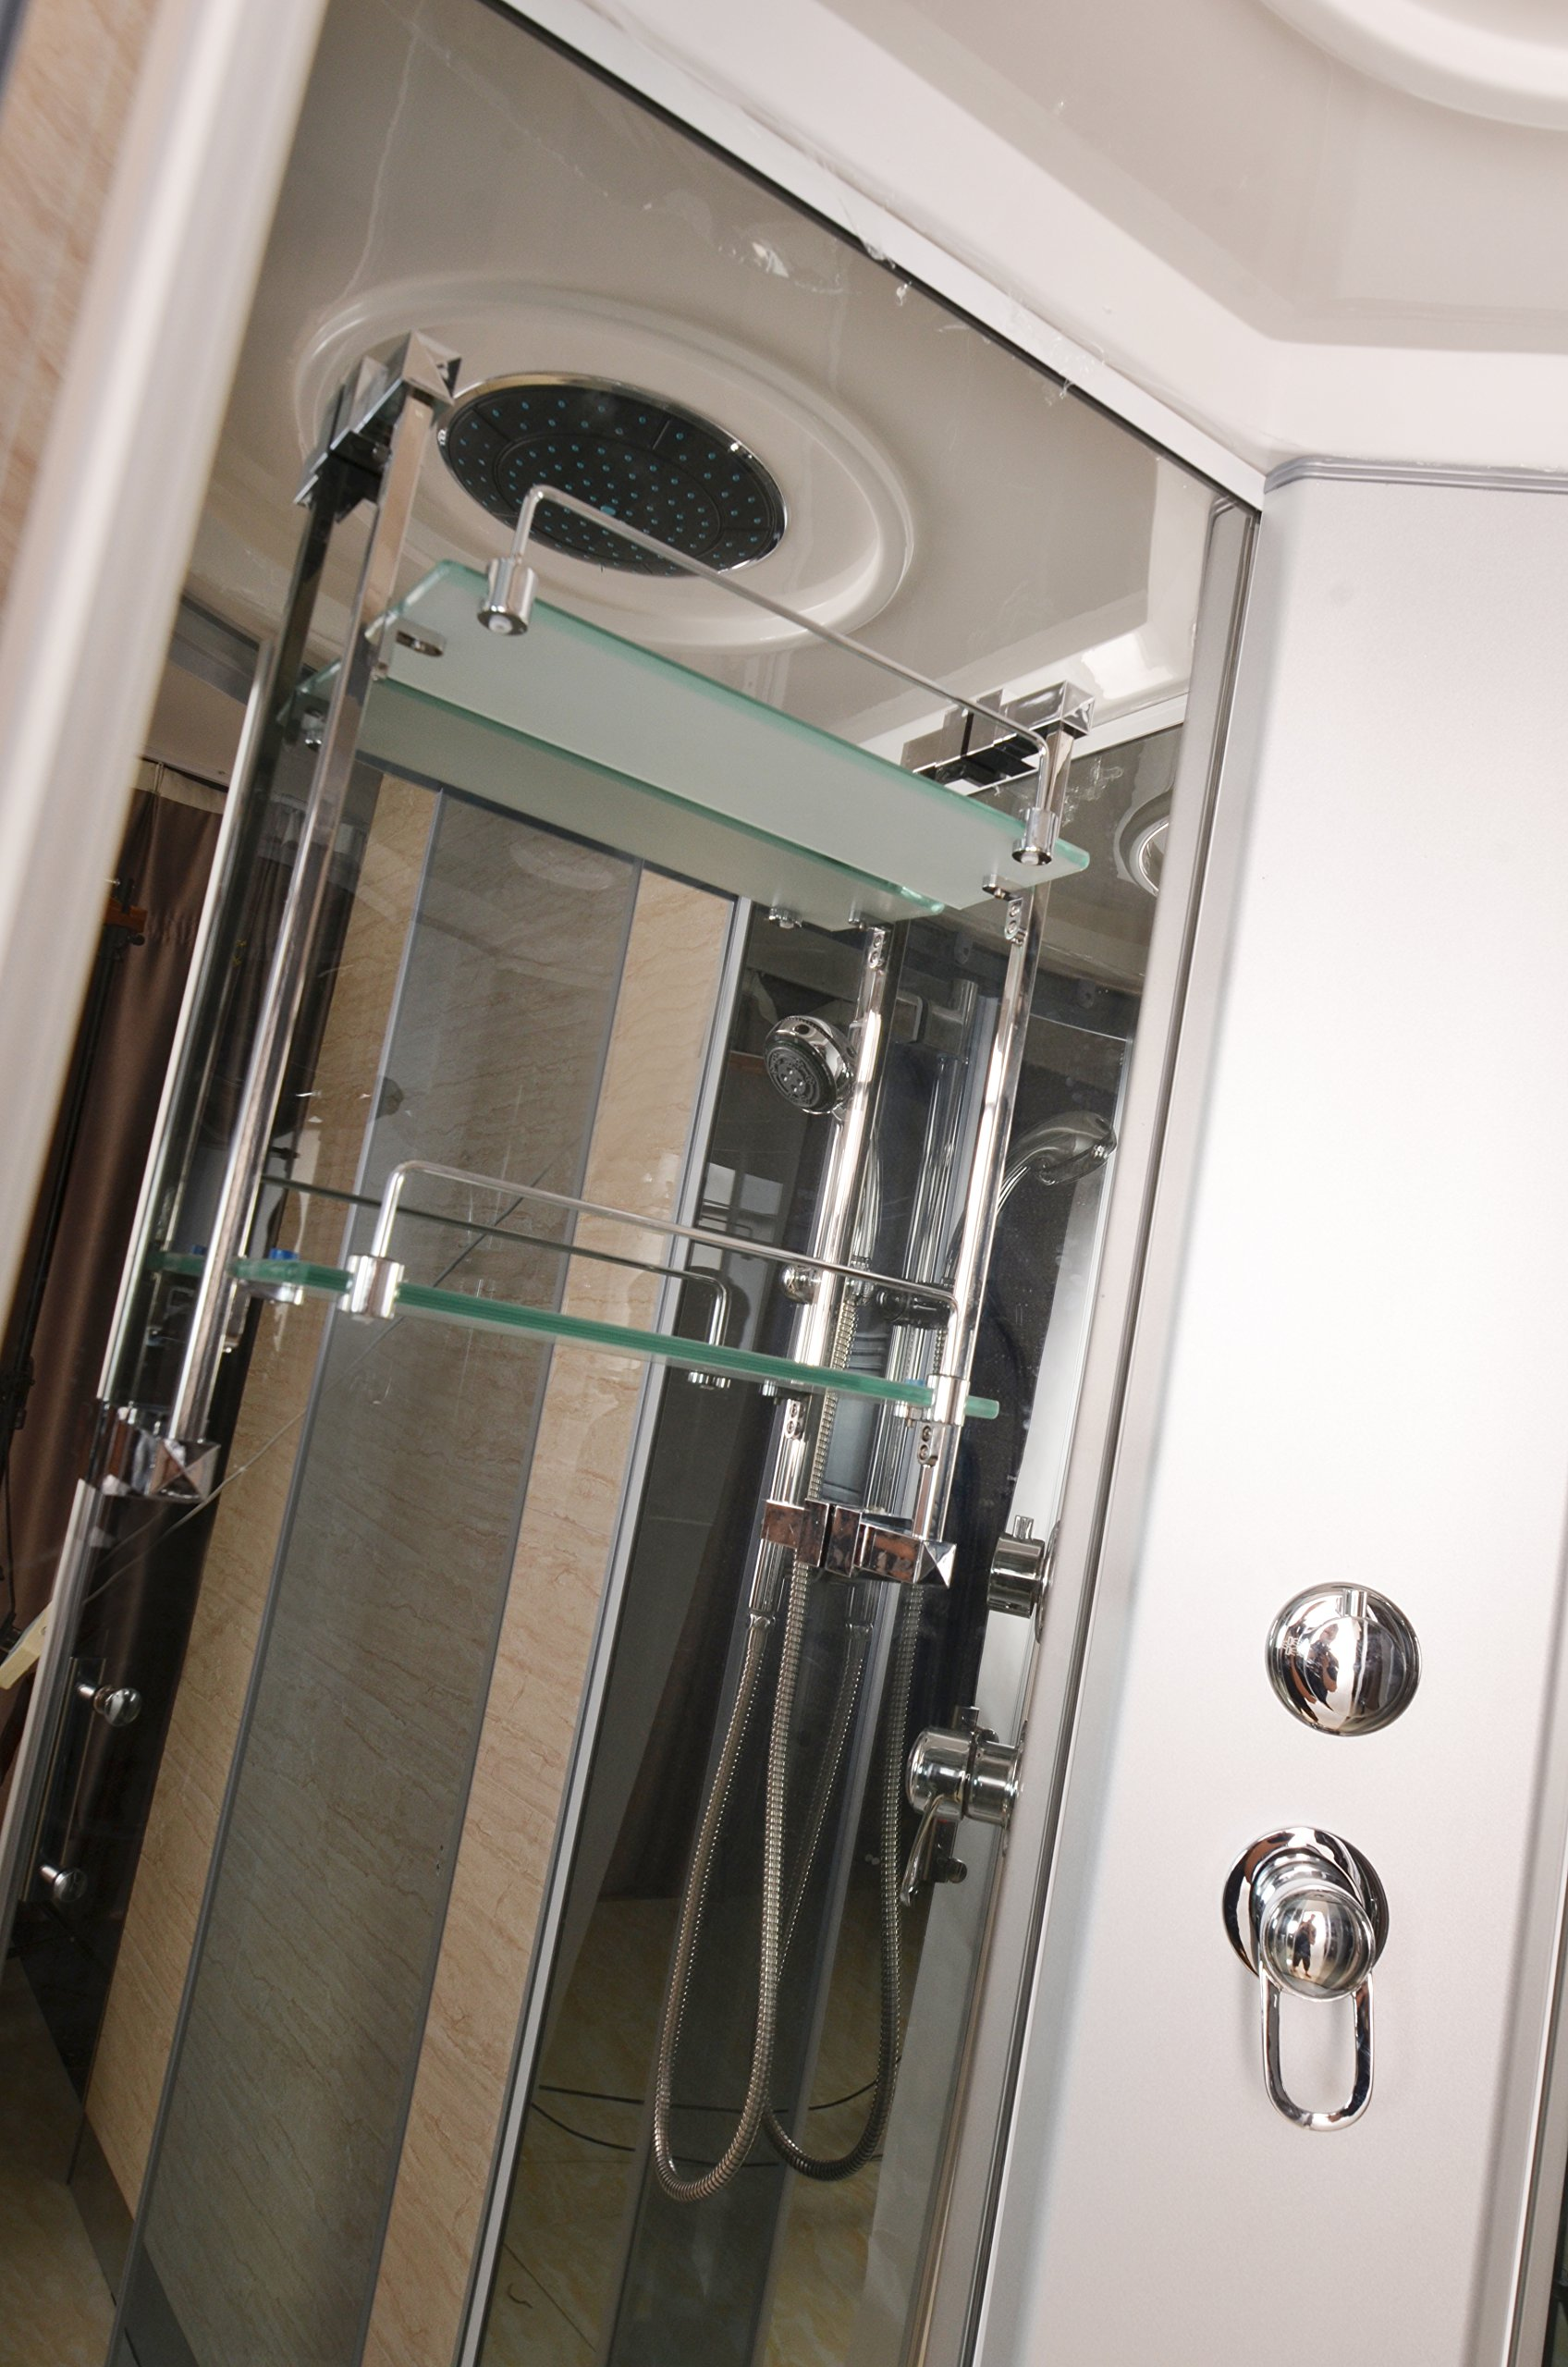 Luxury Kokss 9040 Shower enclosure 36'' x 36'' Multi function hand shower overhead rain, 3 body massage jets and LED Lights with touch screen computer by bath masters (Image #2)